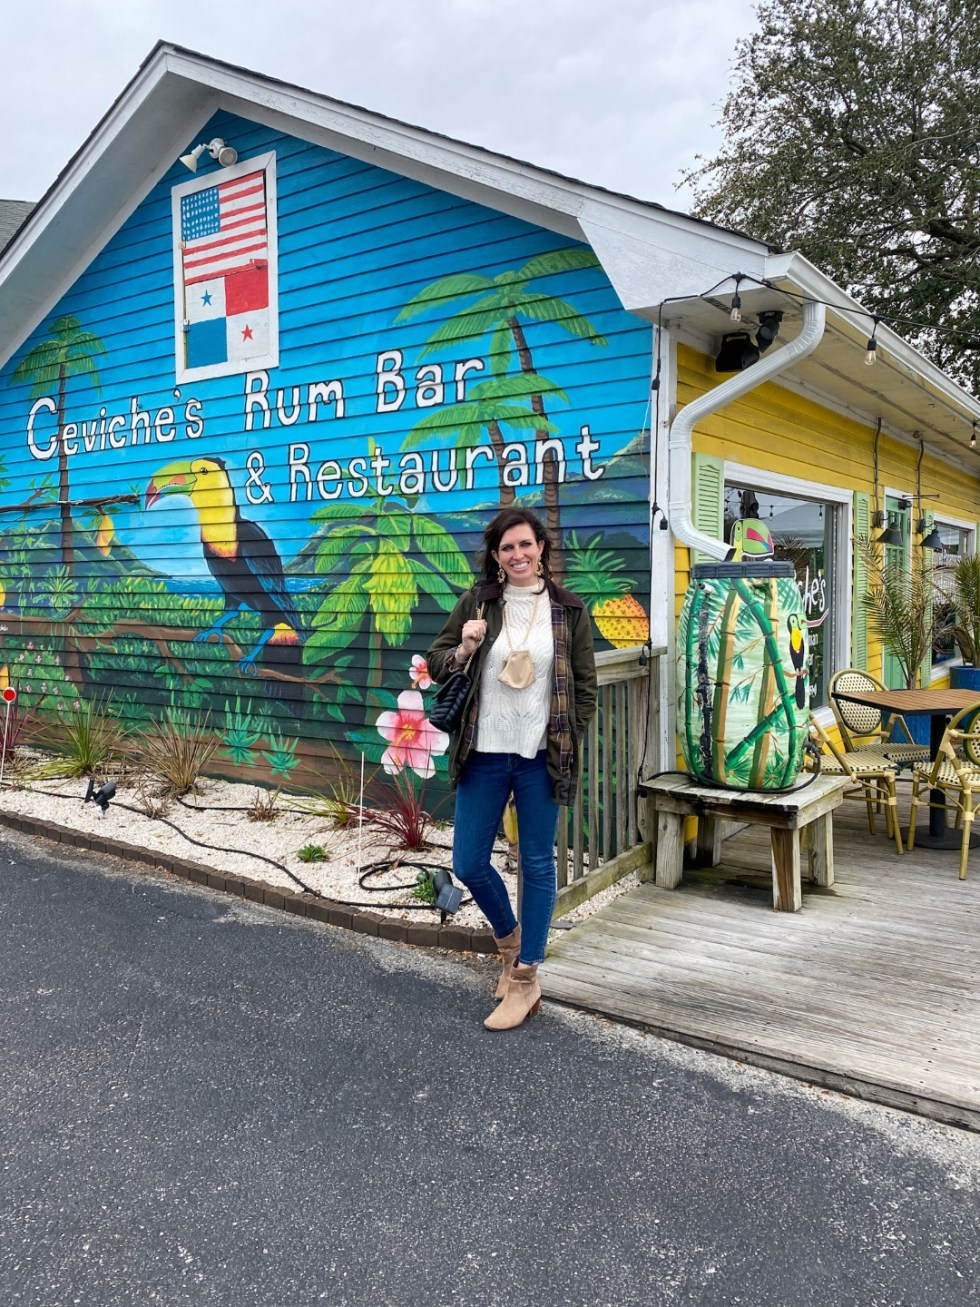 A Spring Weekend in Wilmington, NC: the Best Things to Do - I'm Fixin' To - @imfixintoblog |Weekend in Wilmington by popular NC travel blog, I'm Fixin' To: image of a woman standing in front of Ceviche's Rum Bar and Restaurant.